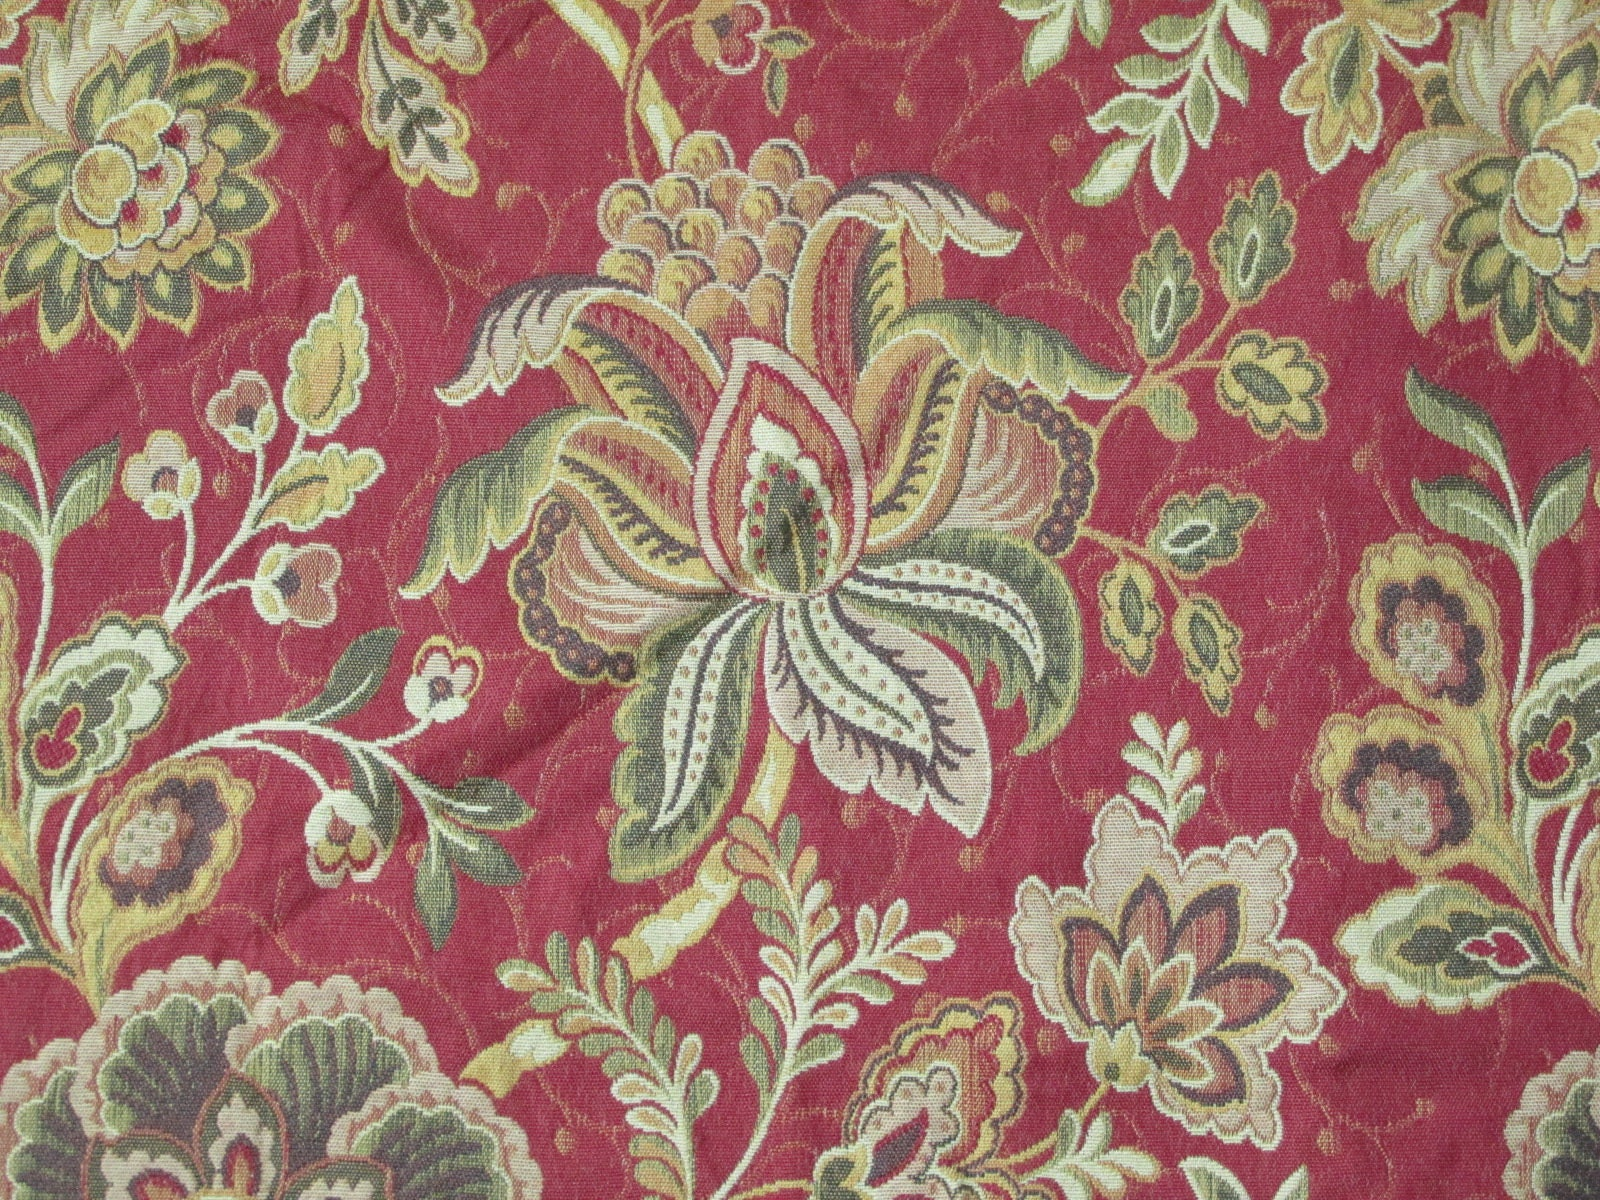 Red Jacobean Floral Upholstery Fabric Remnant 1 Yard Great ...